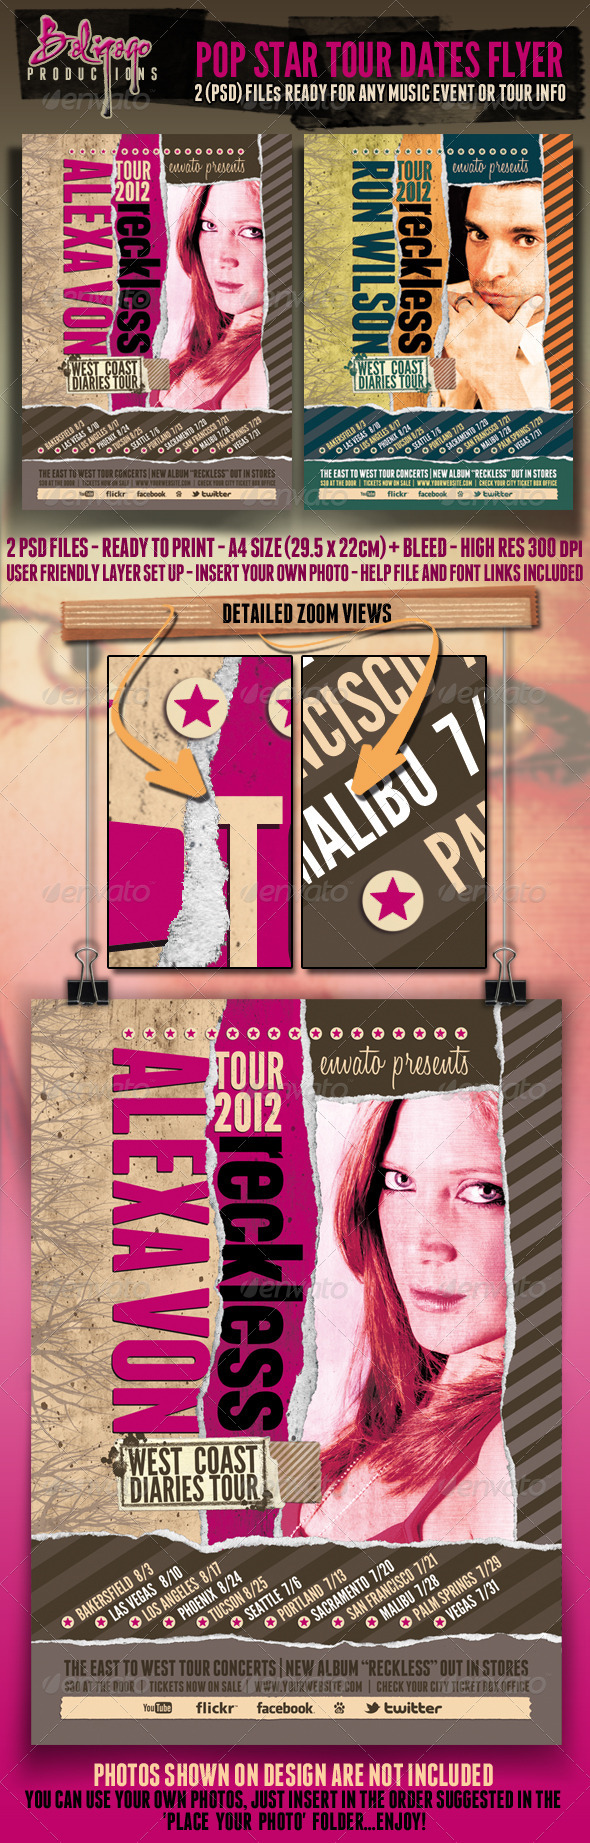 Pop Star Tour Dates Poster - Flyer - Concerts Events